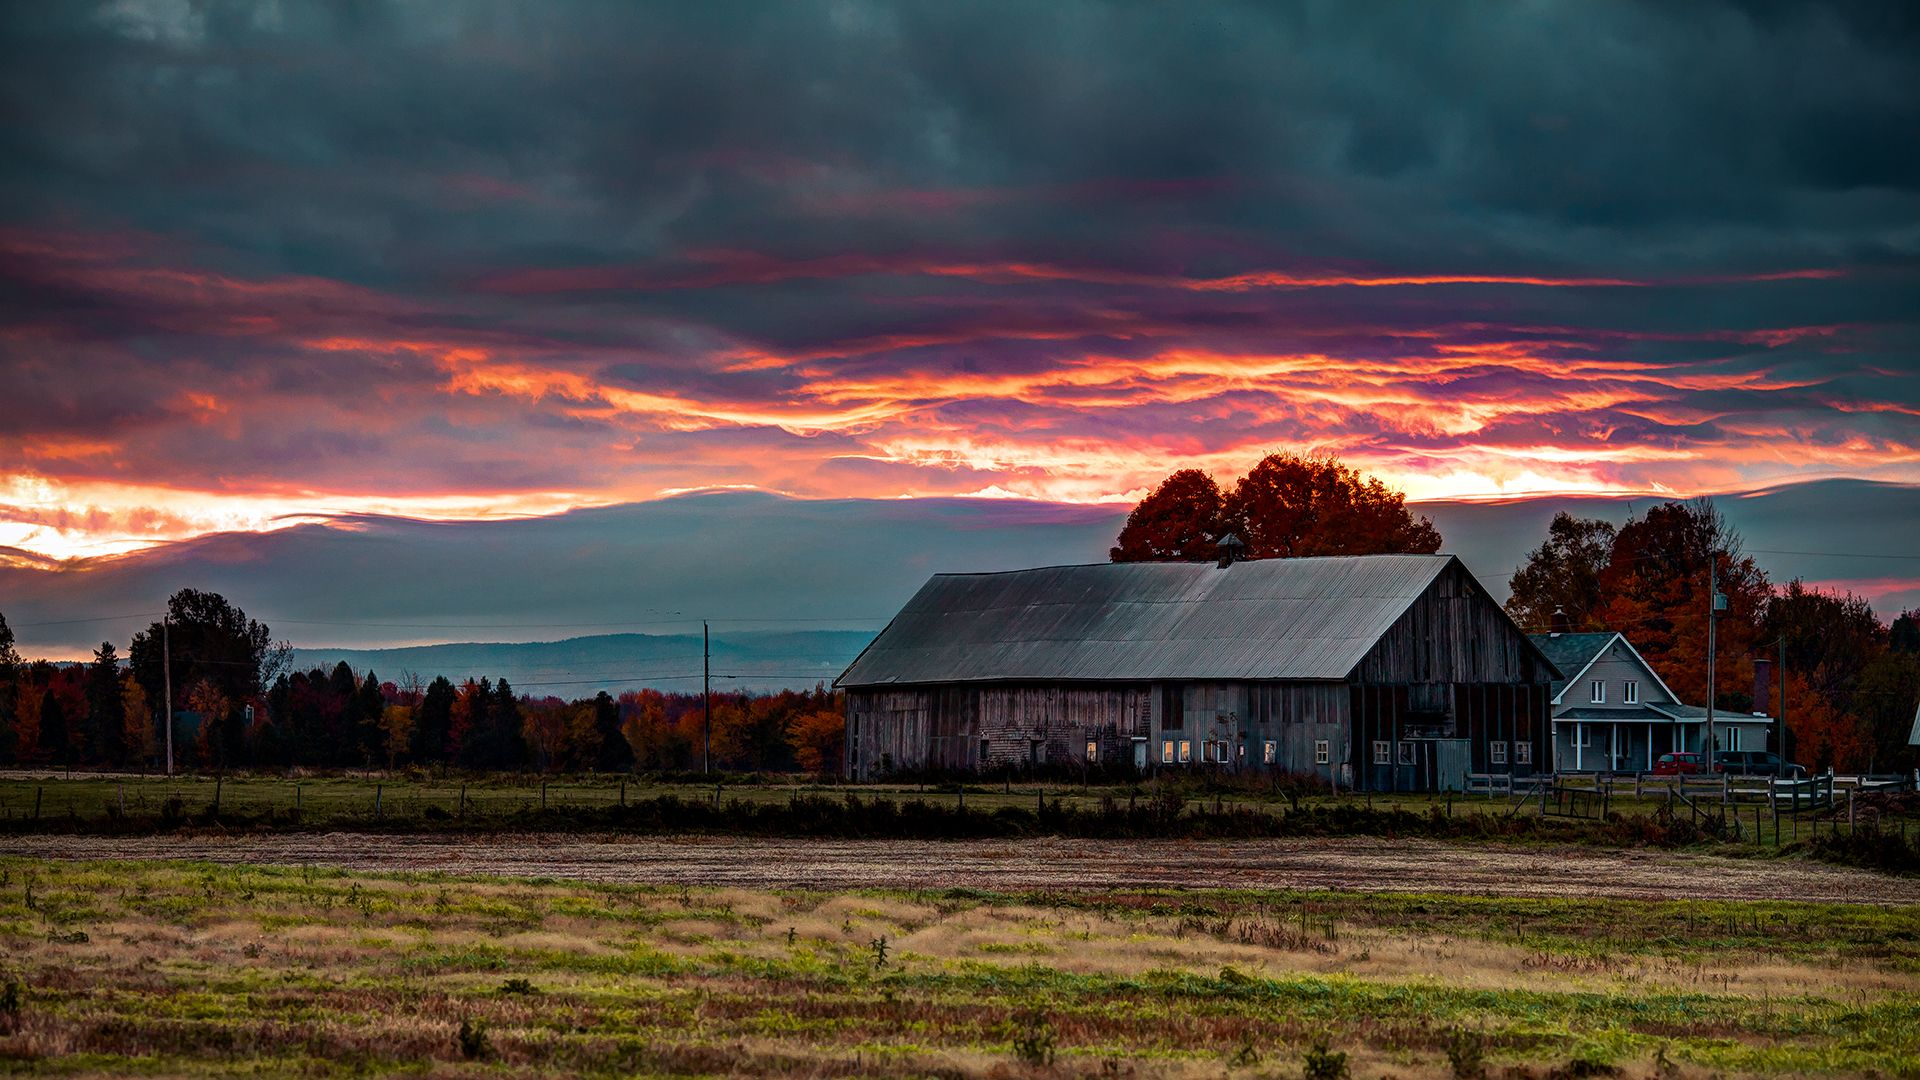 Nature Landscapes Houses Barn Farm Rustic Fields Trees Autumn Fall Sunset Sunrise Sky Clouds Wallpaper Background